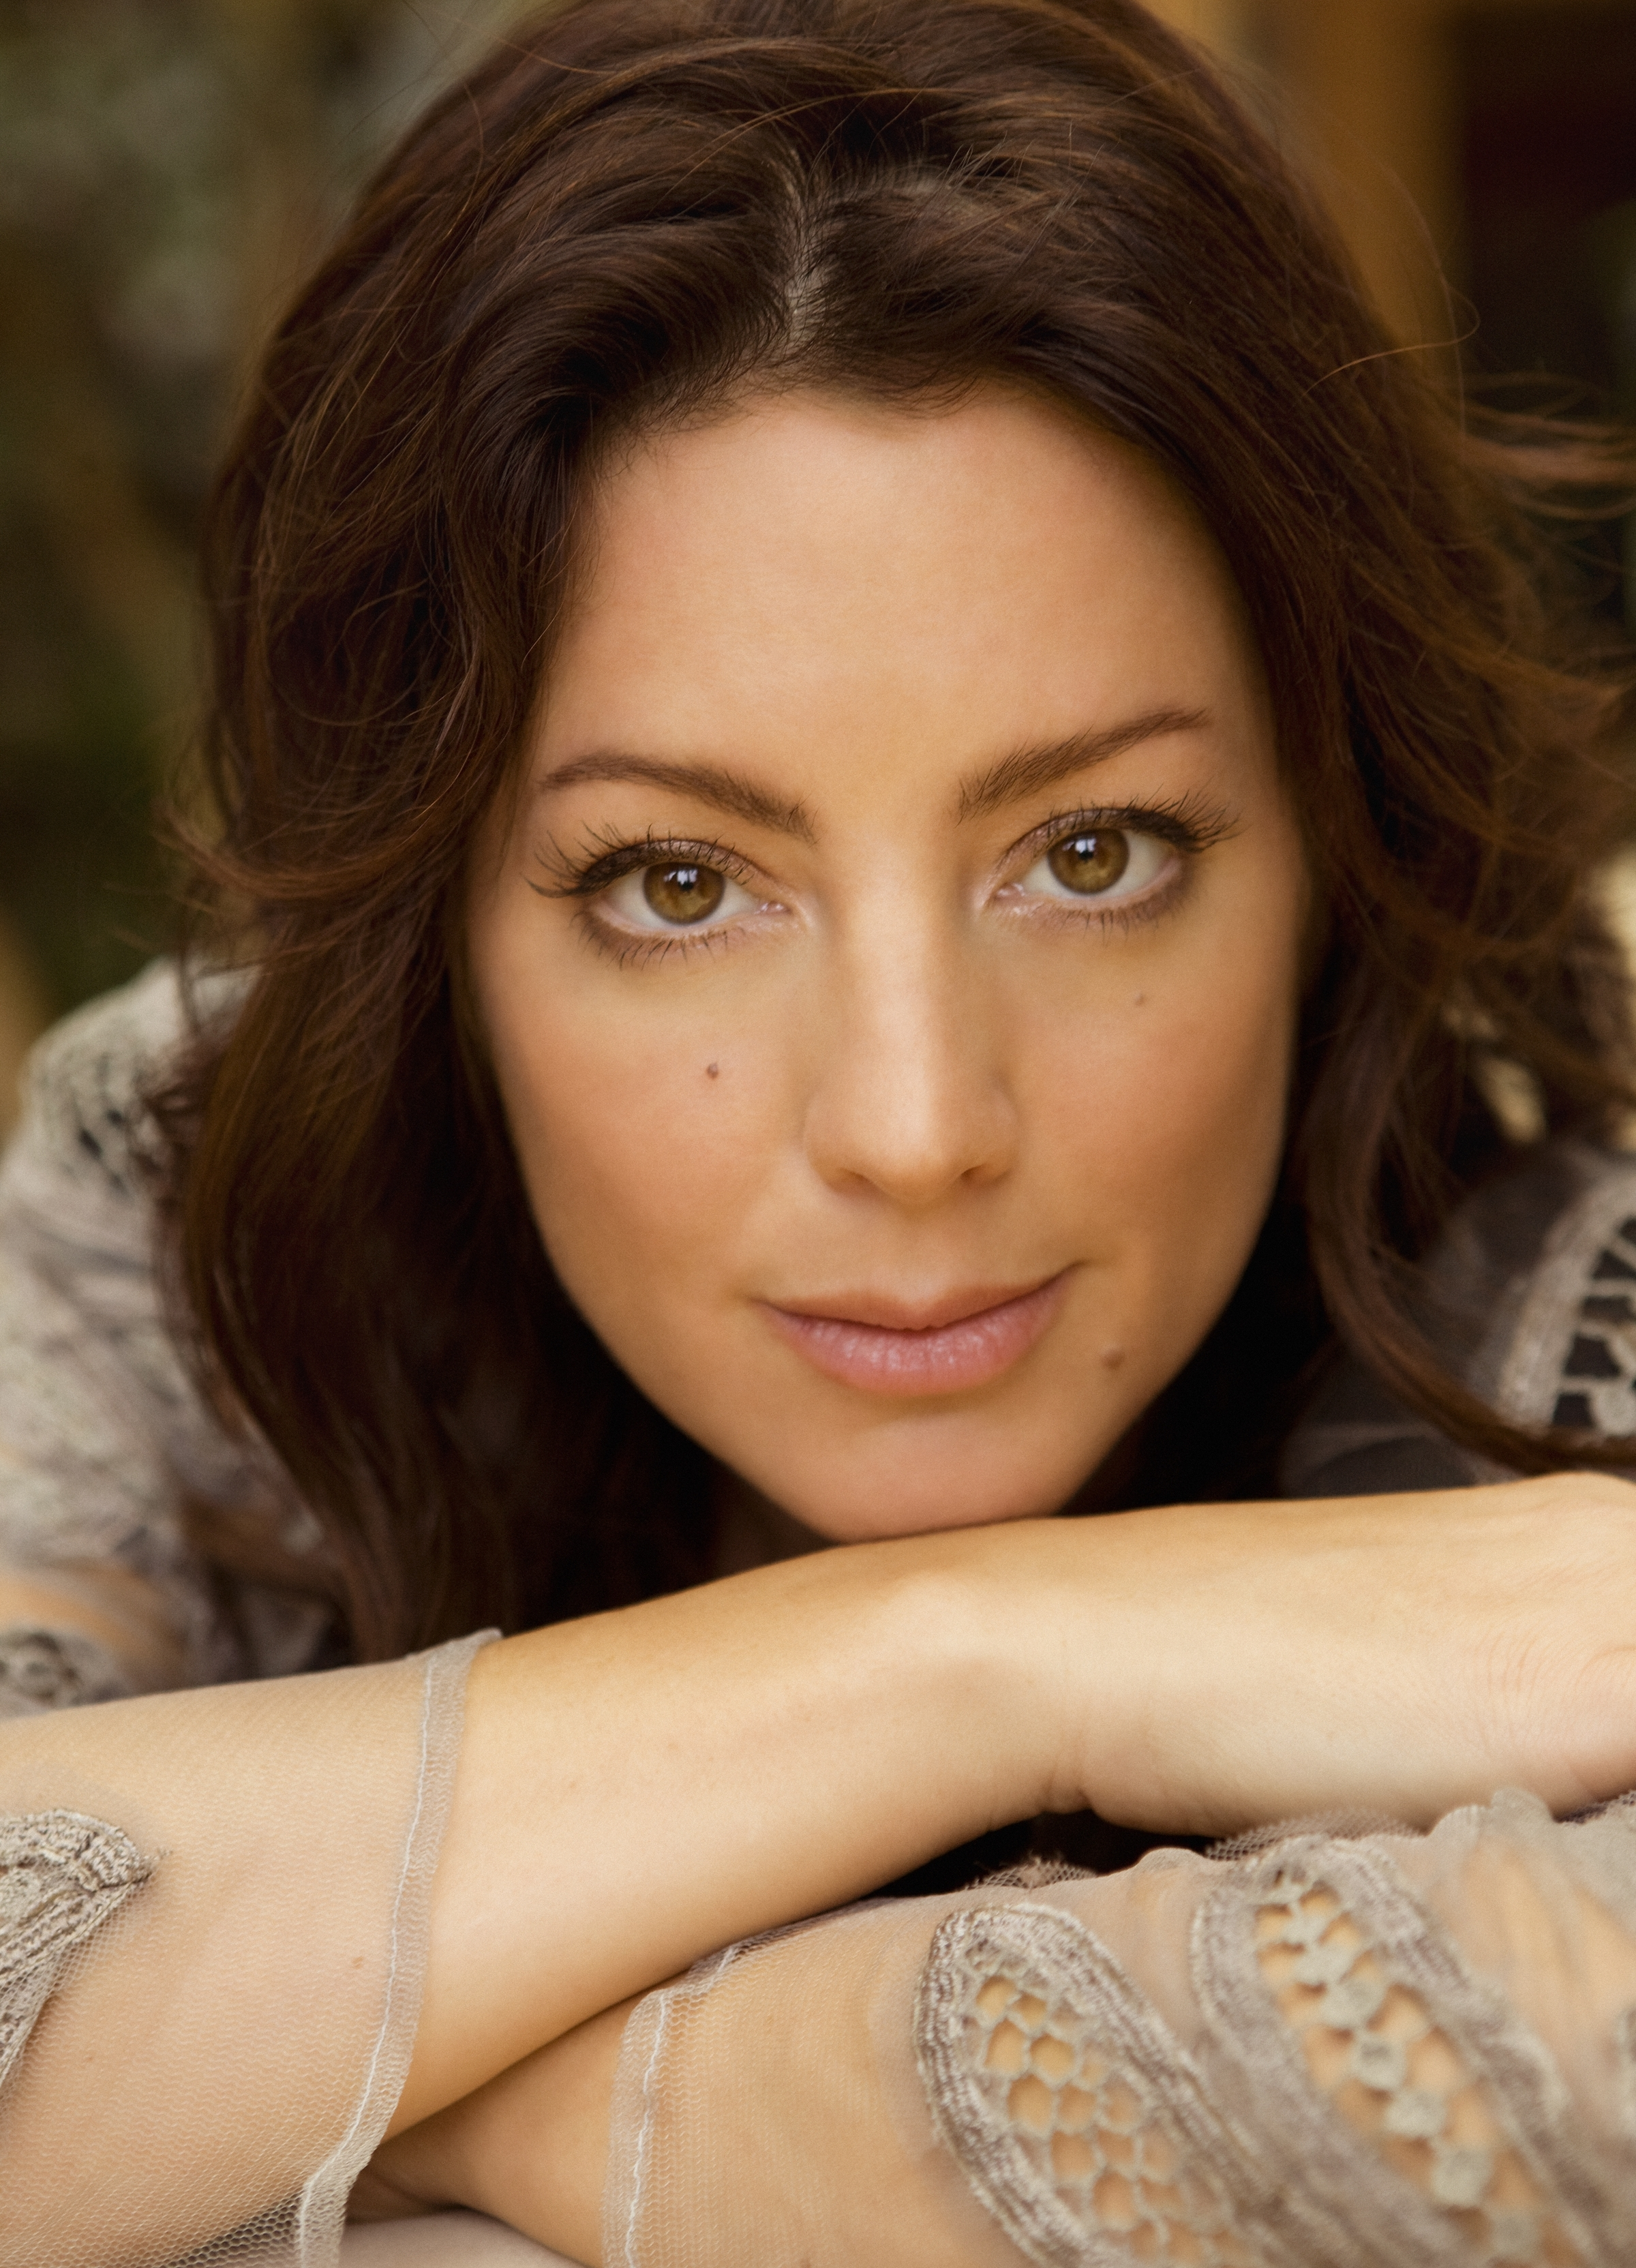 Sarah McLachlan will participate in Surfer's Healing's 2014 fundraiser